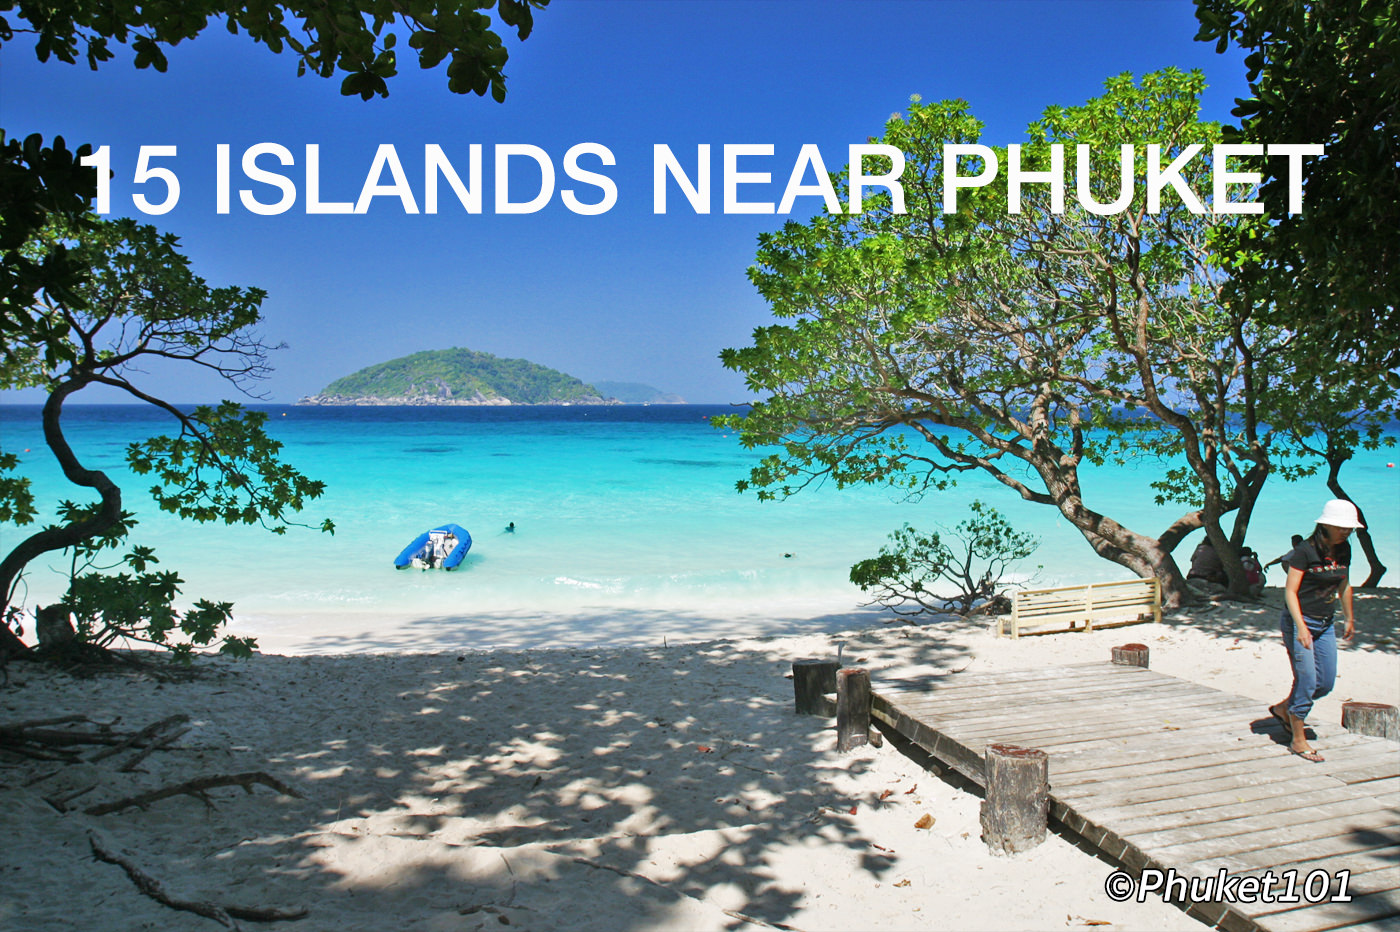 15 Islands Near Phuket (updated)